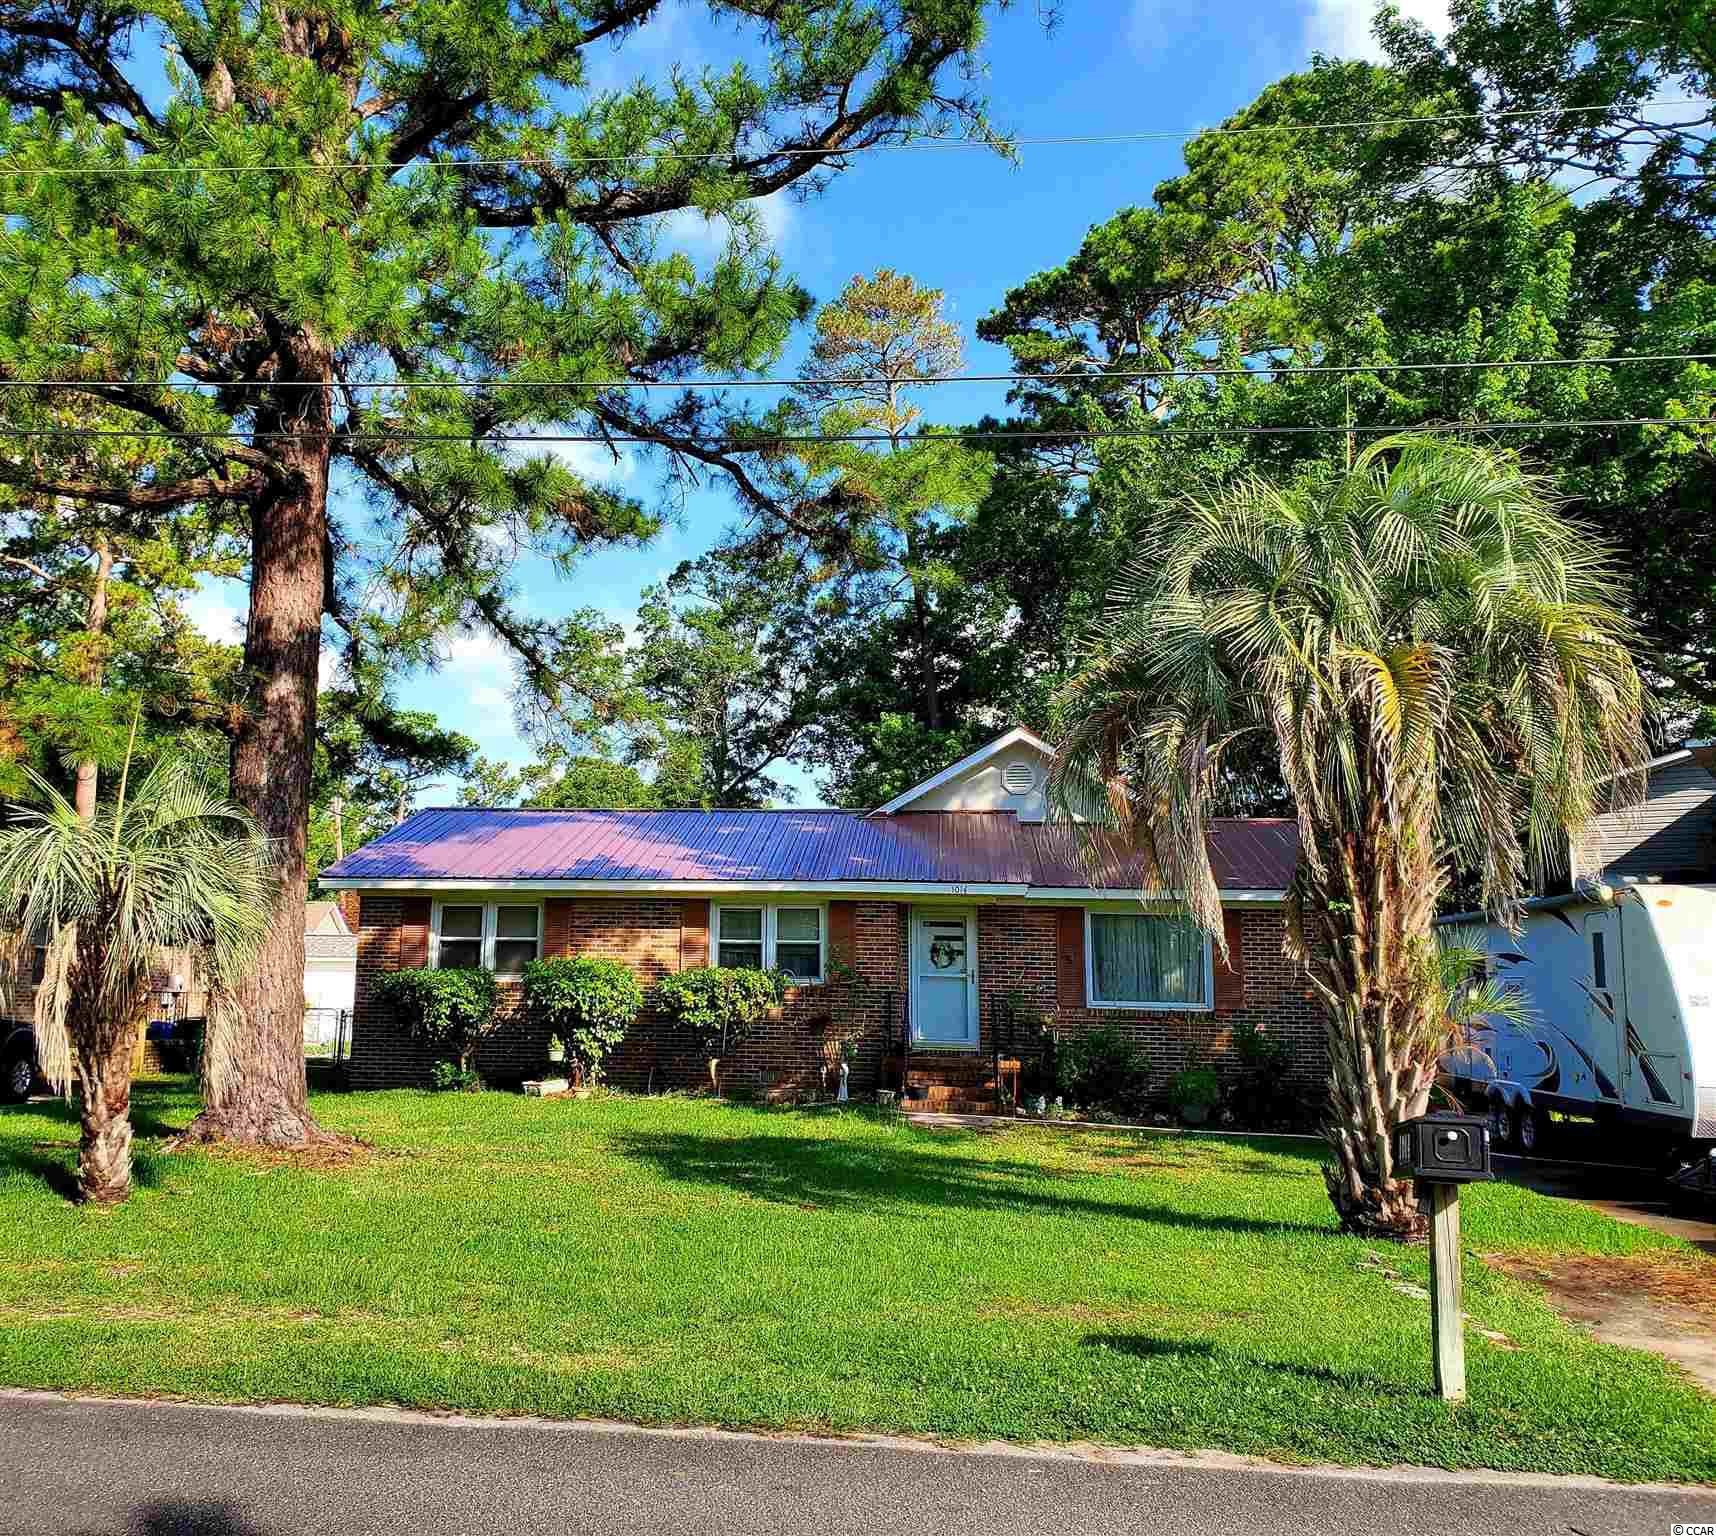 Don't pass up the chance to own this beautiful brick home east of 17 in the town limits of exclusive Surfside Beach.  Home has been updated with top notch features. Large living room and kitchen. Great size front and back yards. Back is large enough for pool with ease. Two primary suites at opposite sides of the house, two guest bedrooms, one is being used as an office and most can fit king size beds with furniture.   2.5 bathrooms and a formal dining room. Wrap around deck accessible by 2 sliding doors. No Flood insurance necessary. About 7 blocks to the beach, and 3 blocks to the children's park all accessible by walking or golf cart. No HOA so bring your toys, campers, motorcycles or boats are allowed. New roof 2021, new hot water heater 2021. HVAC 3 ton unit 2017. Kitchen has granite counter tops, Maple Cabinets and stainless steel appliances installed 2019. Kitchen undated,with an addition of formal dining Room, large back deck, Primary bedroom and bath in 2005.  All measurements and data are deemed reliable but are not guaranteed, buyer and or buyer's agent to verify.